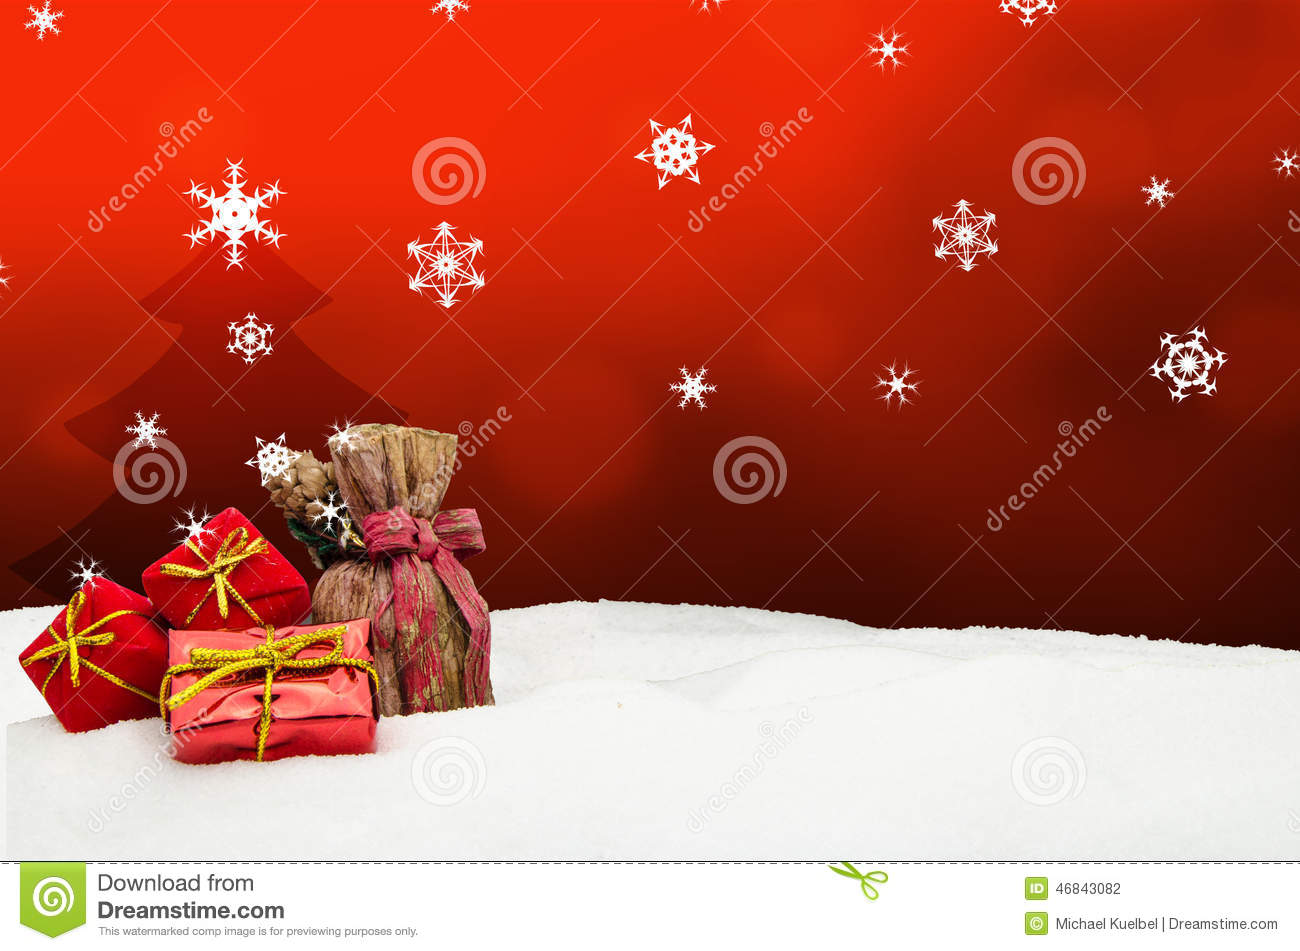 Christmas background tree gifts red snow